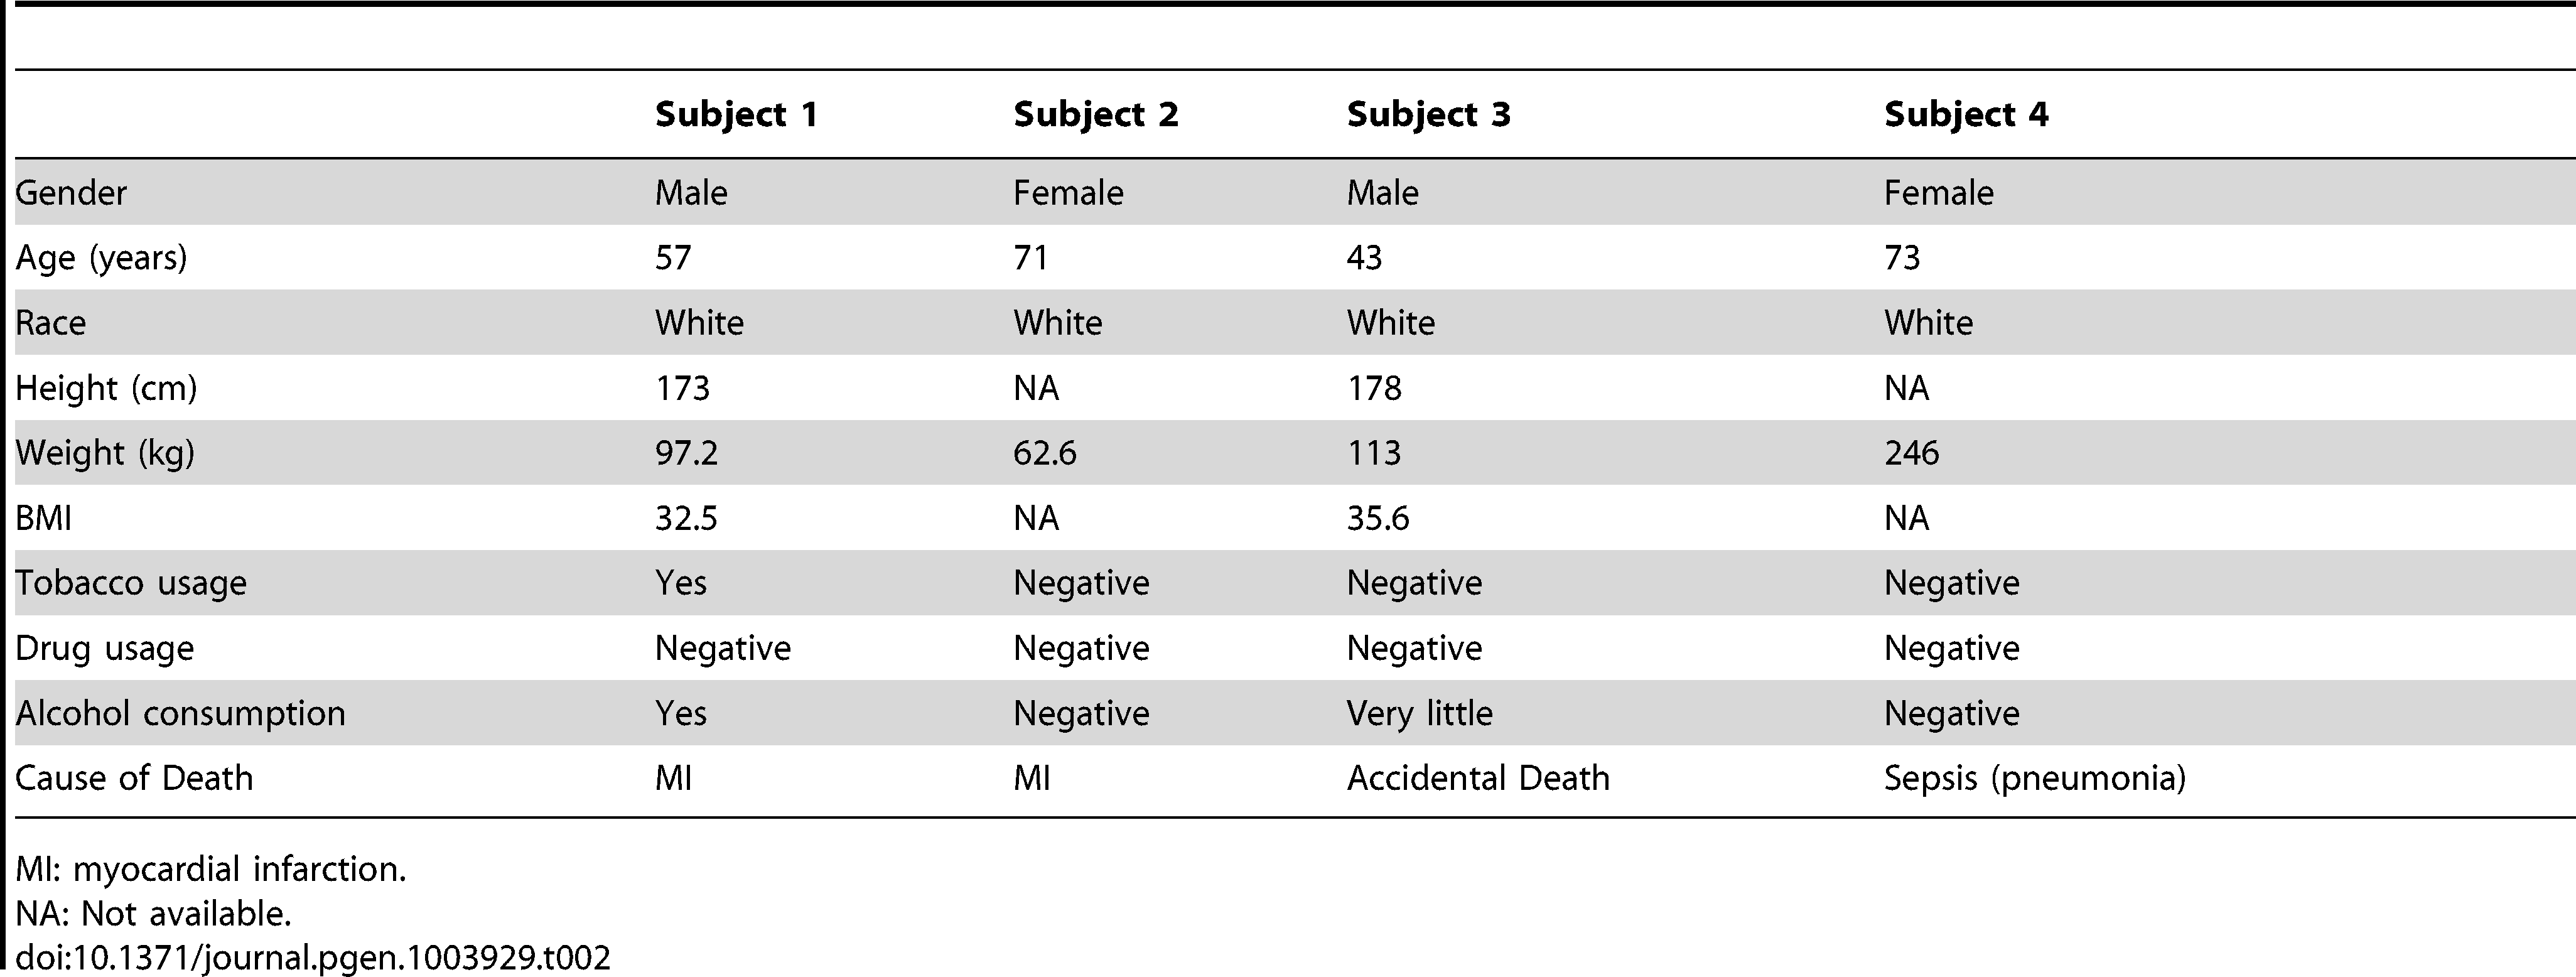 Demographics for our subjects.